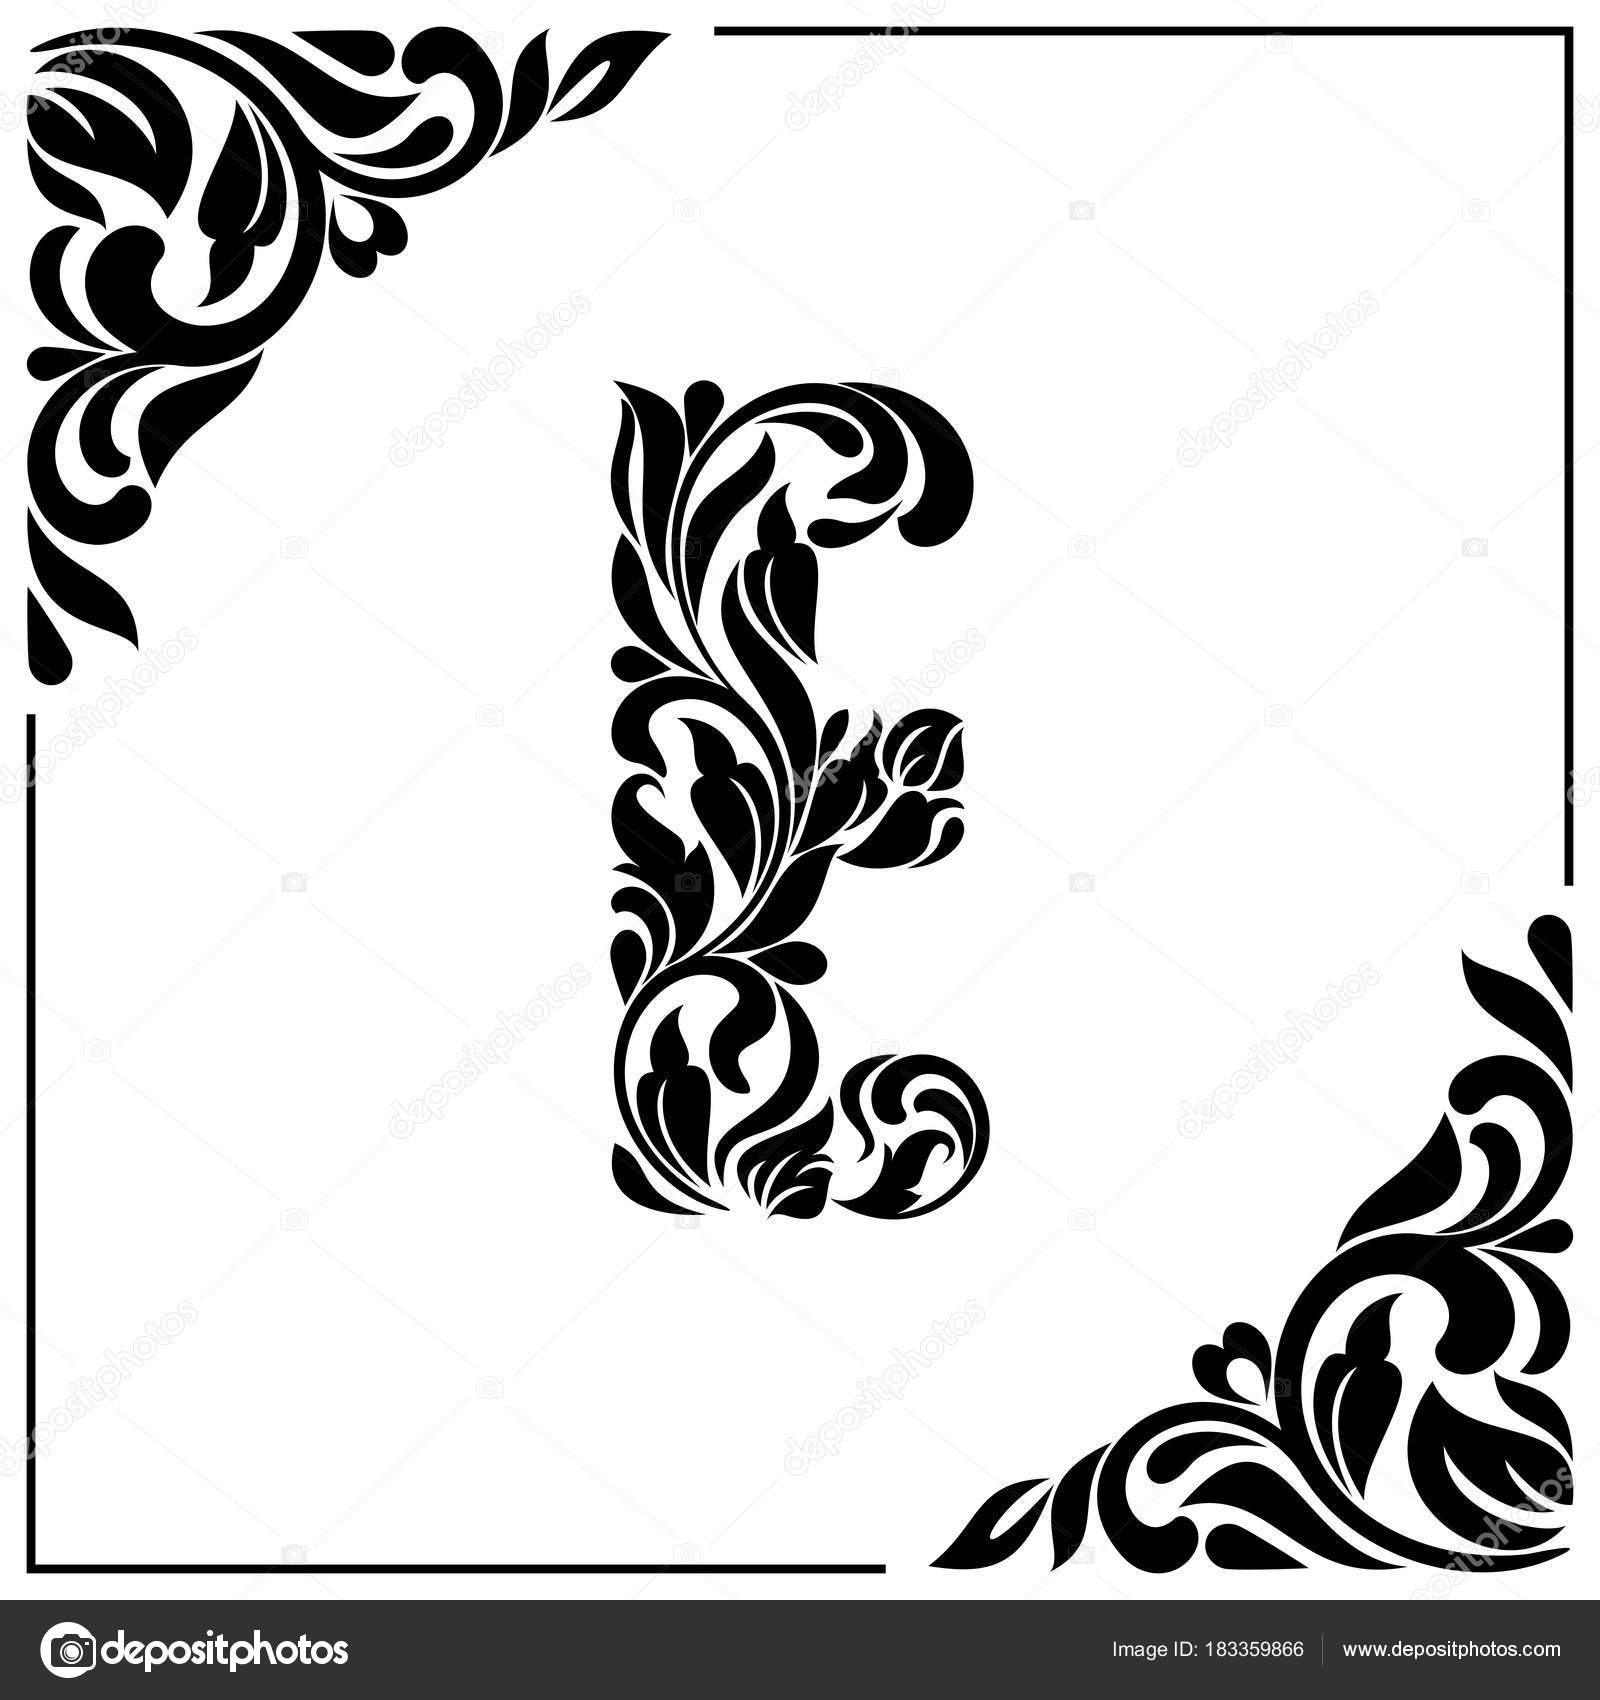 The Letter E Decorative Font With Swirls And Floral Elements Vintage Style Stock